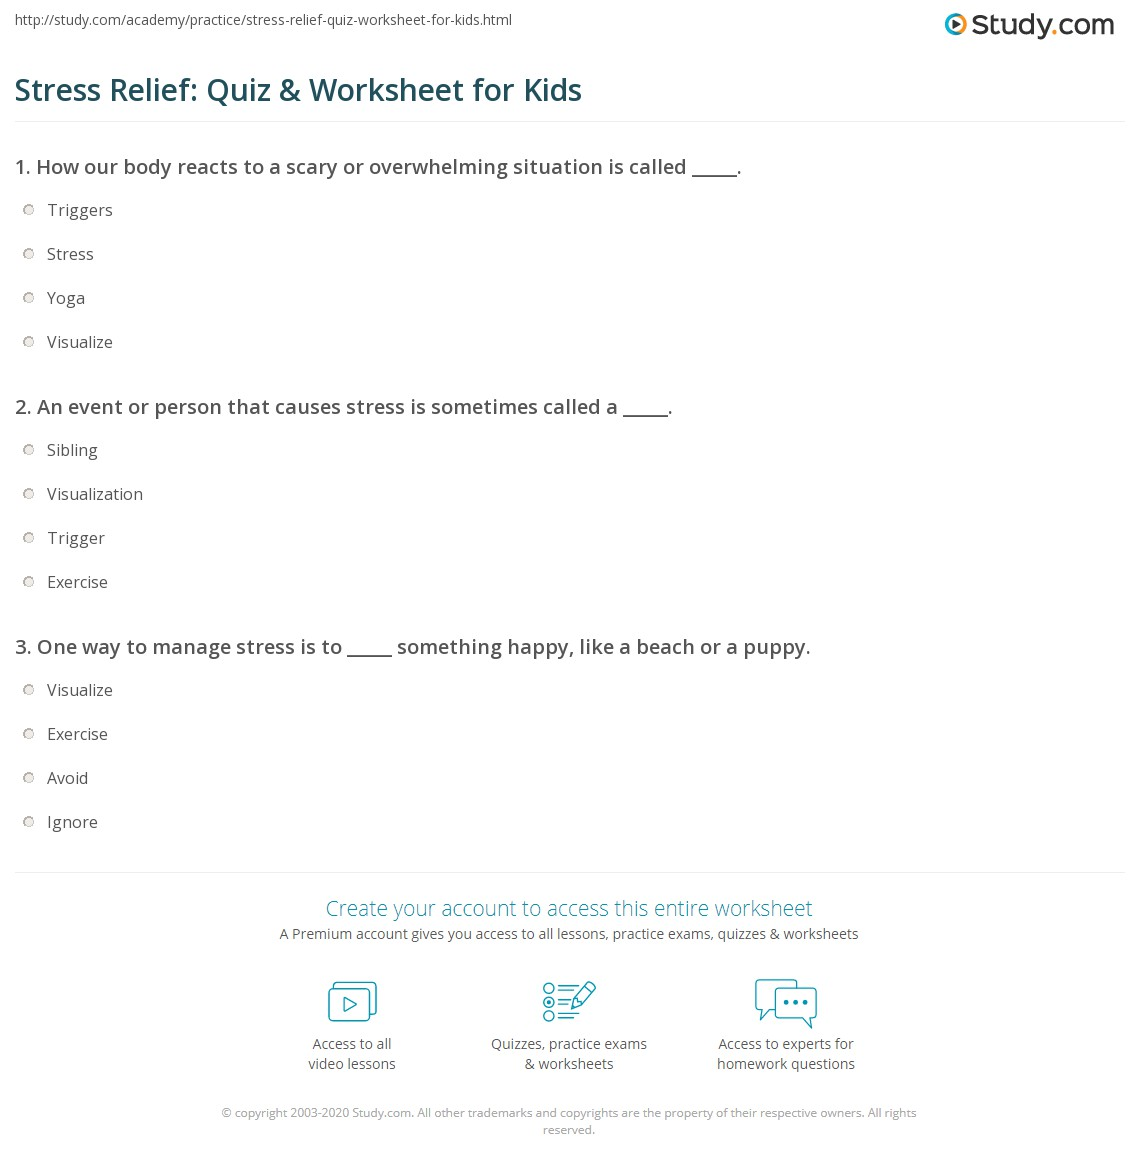 Stress Relief: Quiz & Worksheet for Kids | Study.com